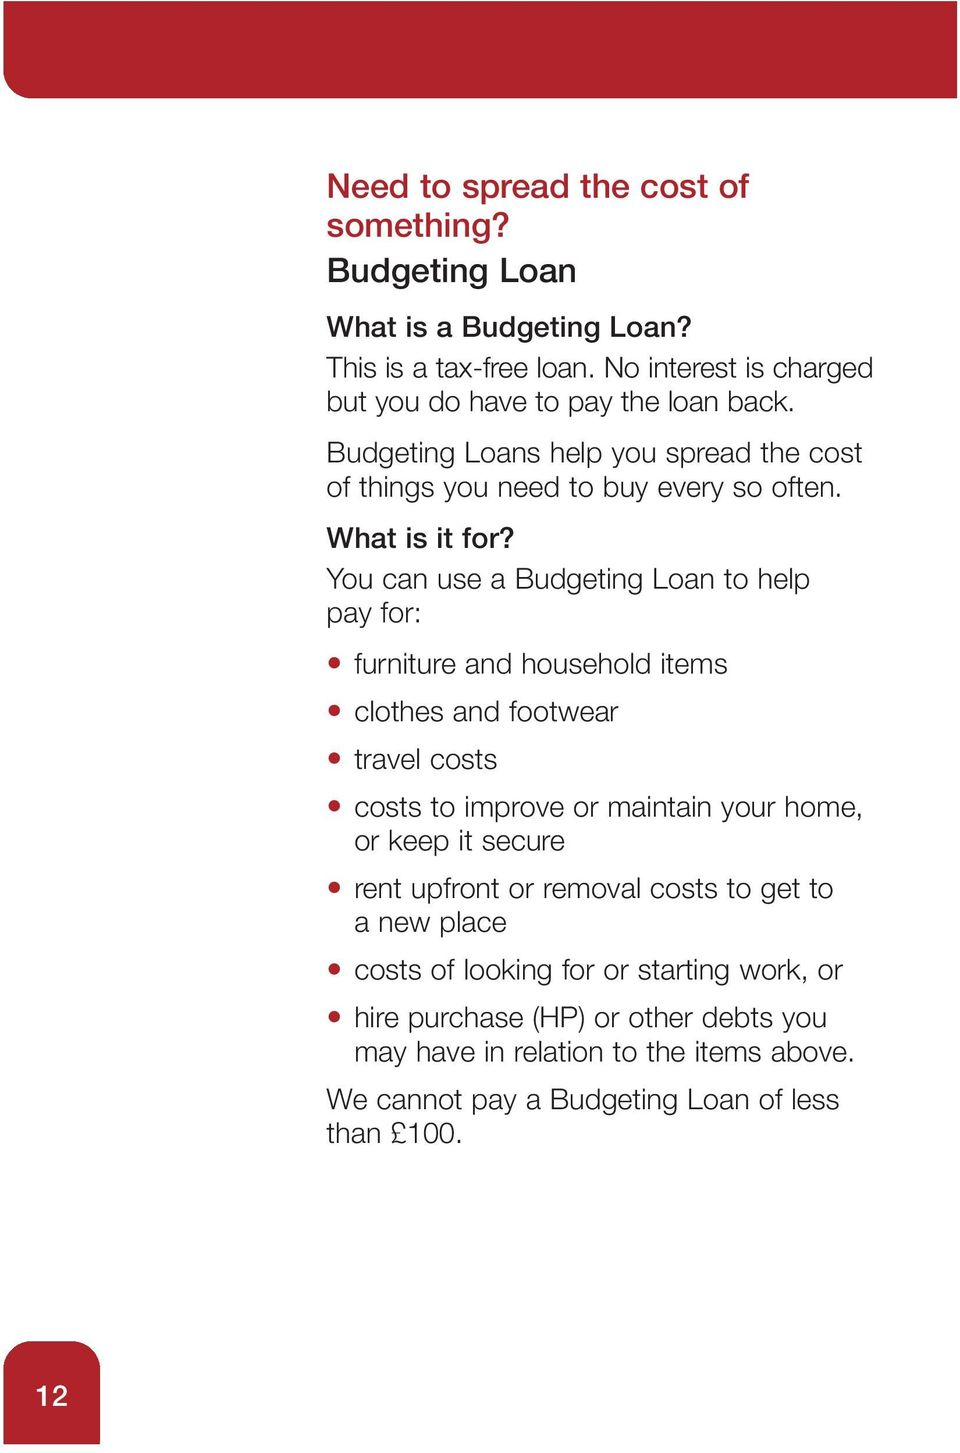 You can use a Budgeting Loan to help pay for: furniture and household items clothes and footwear travel costs costs to improve or maintain your home, or keep it